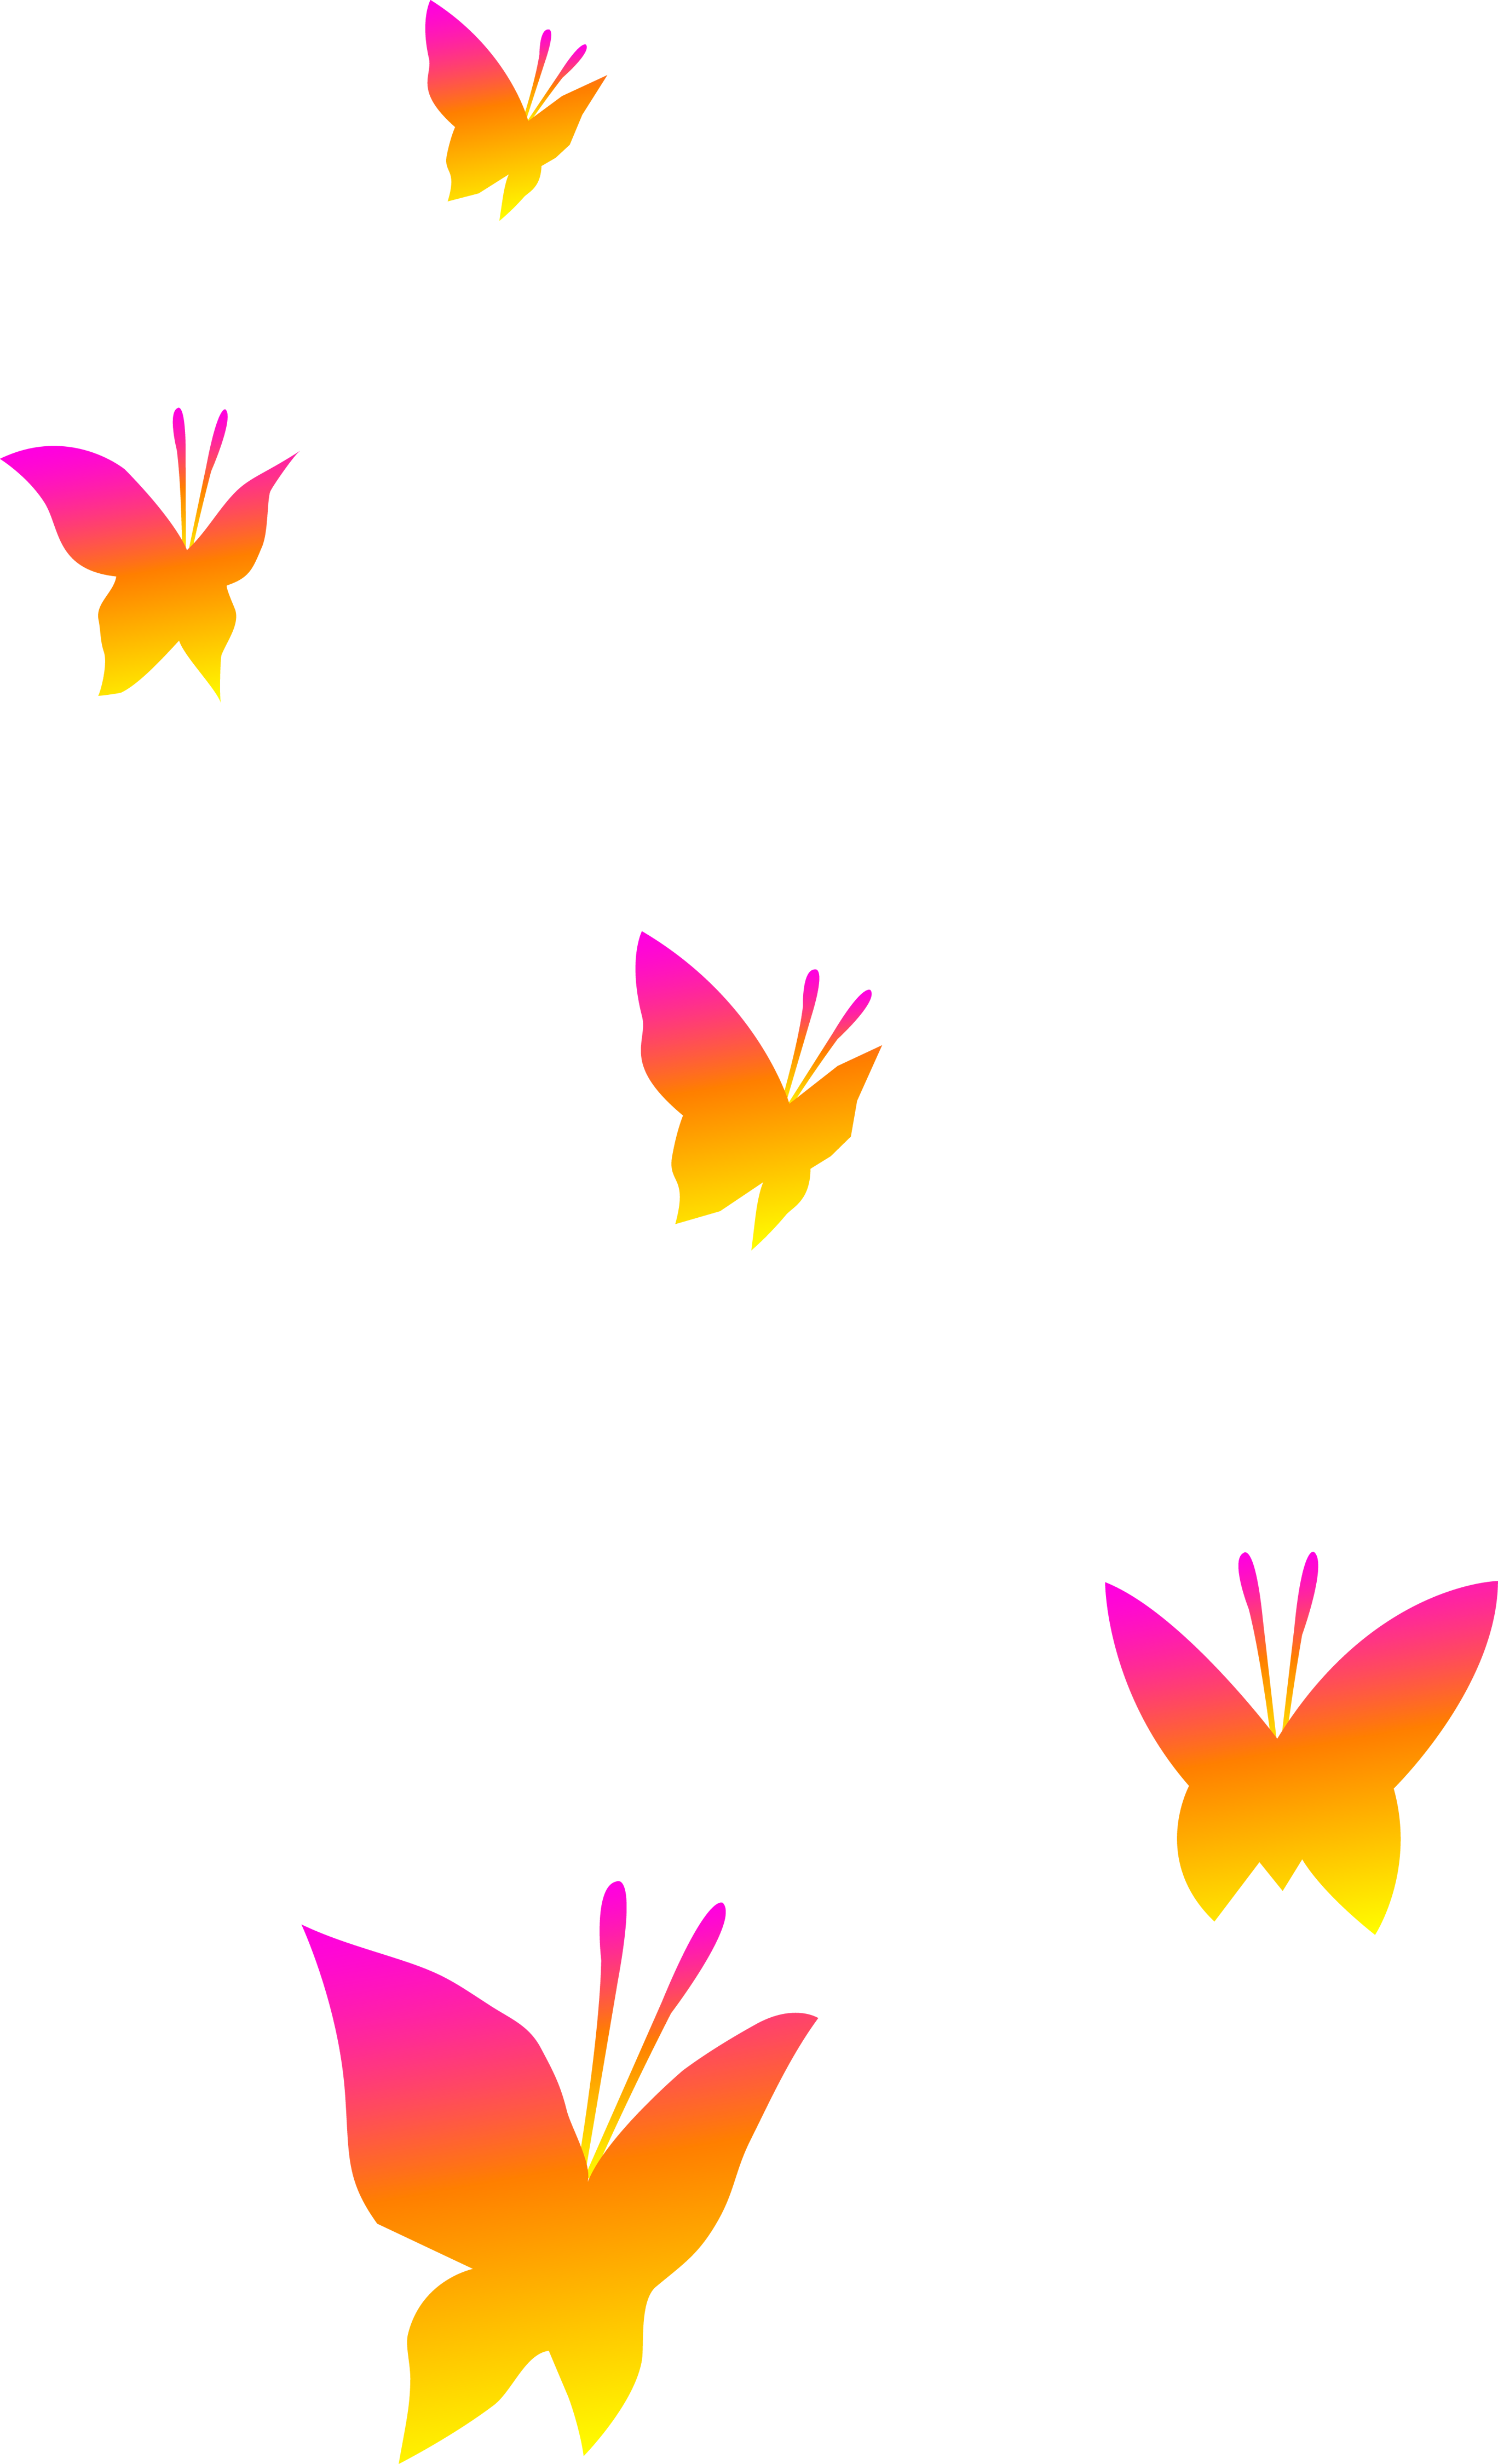 Color clipart transparent background In in Girly clipart butterfly